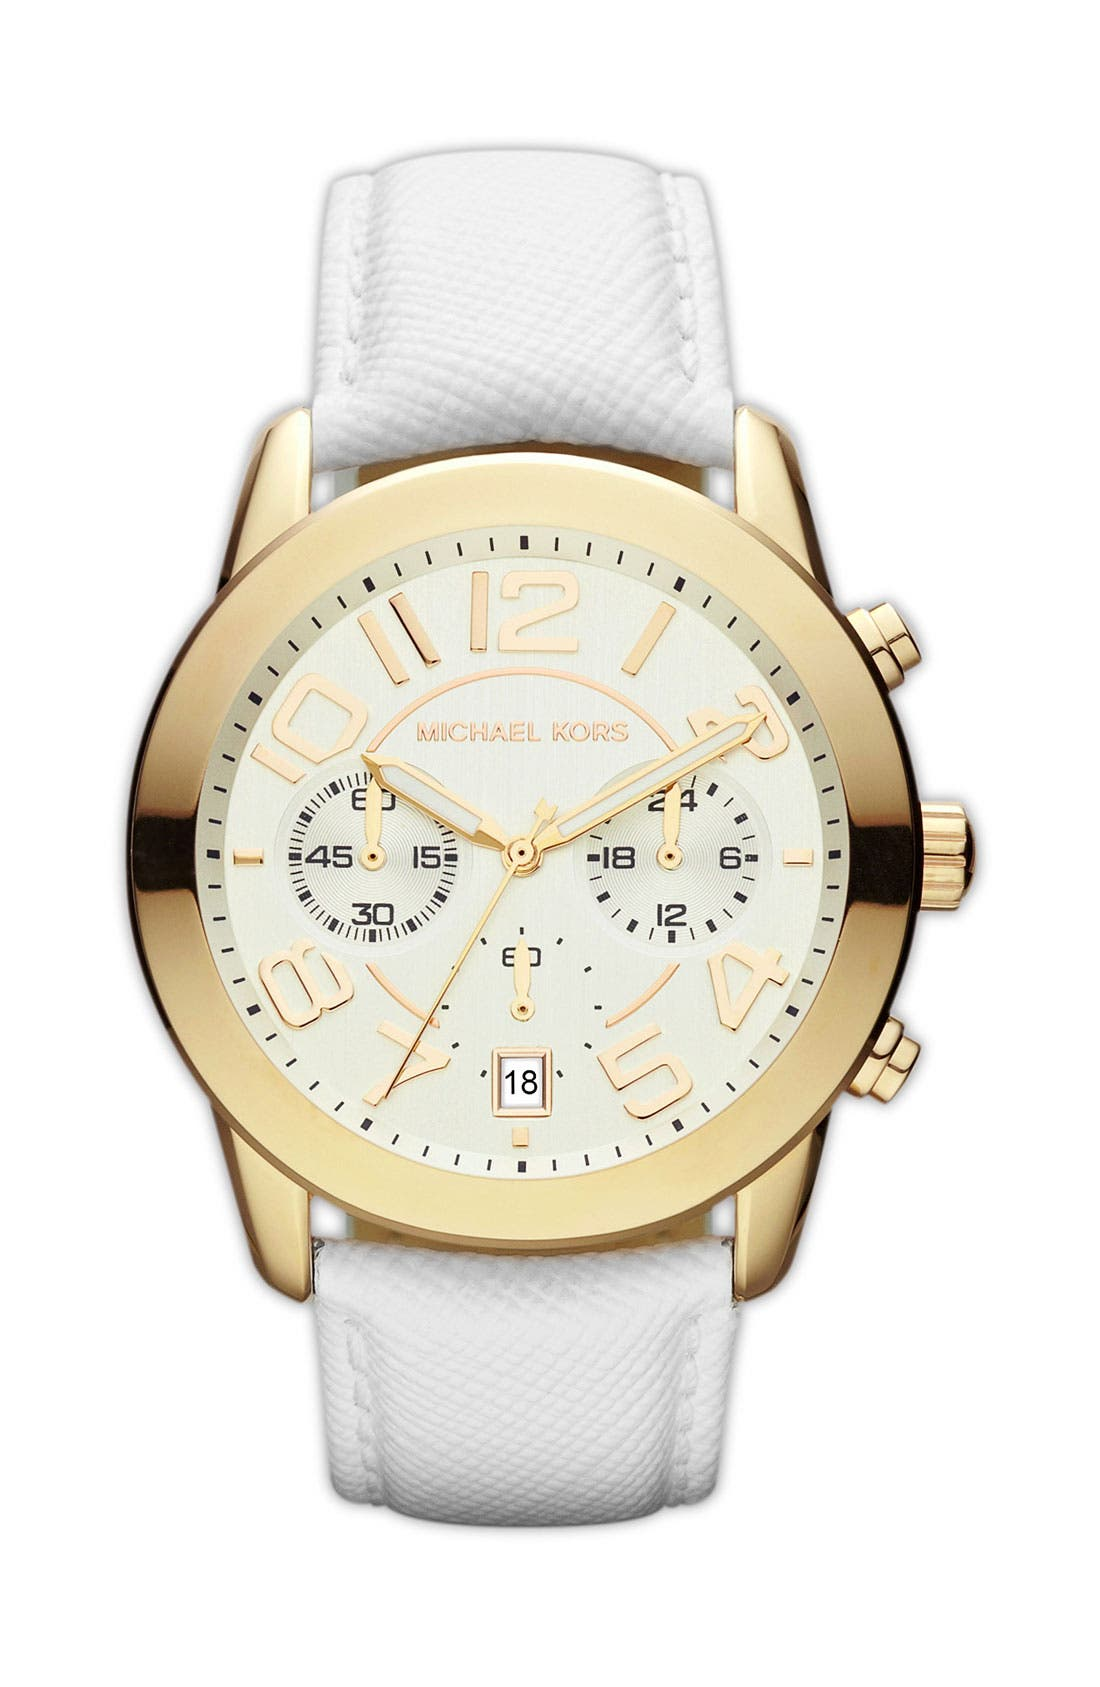 Main Image - Michael Kors Chronograph Leather Strap Watch, 41mm